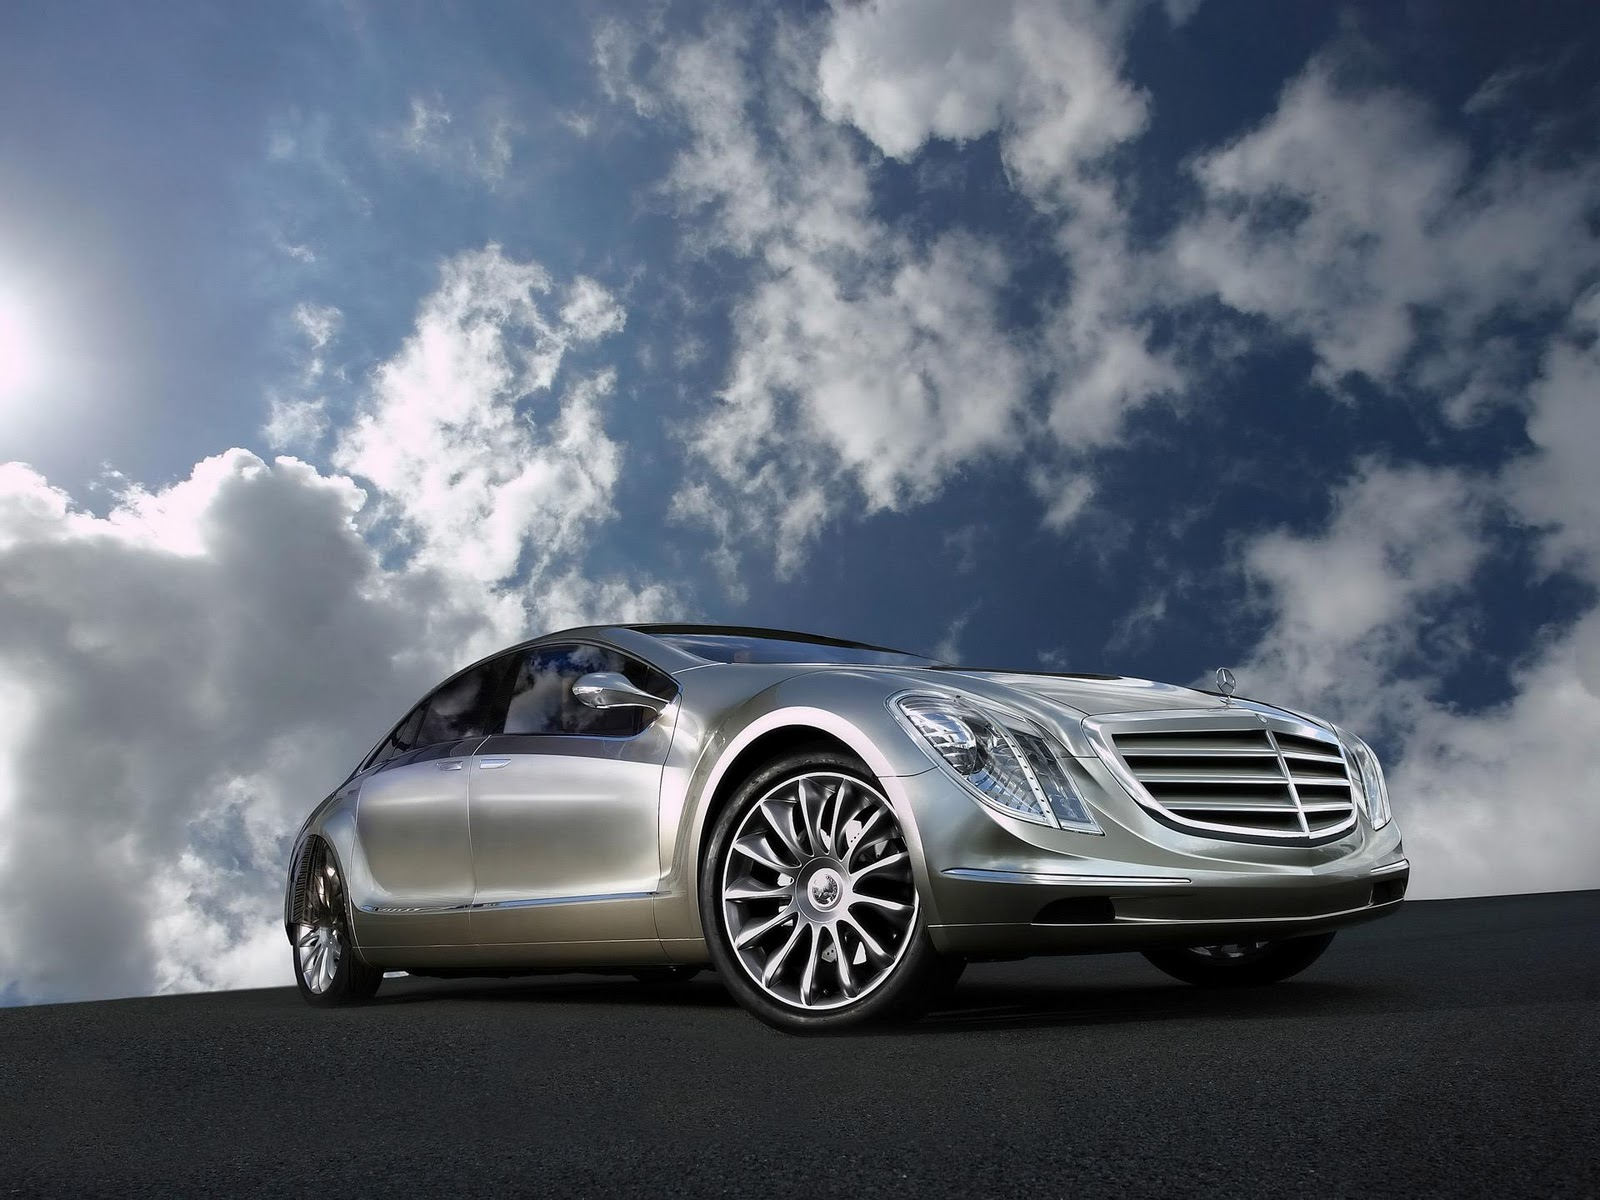 Mercedes benz wallpaper desktop cars n bikes for Autos mercedes benz